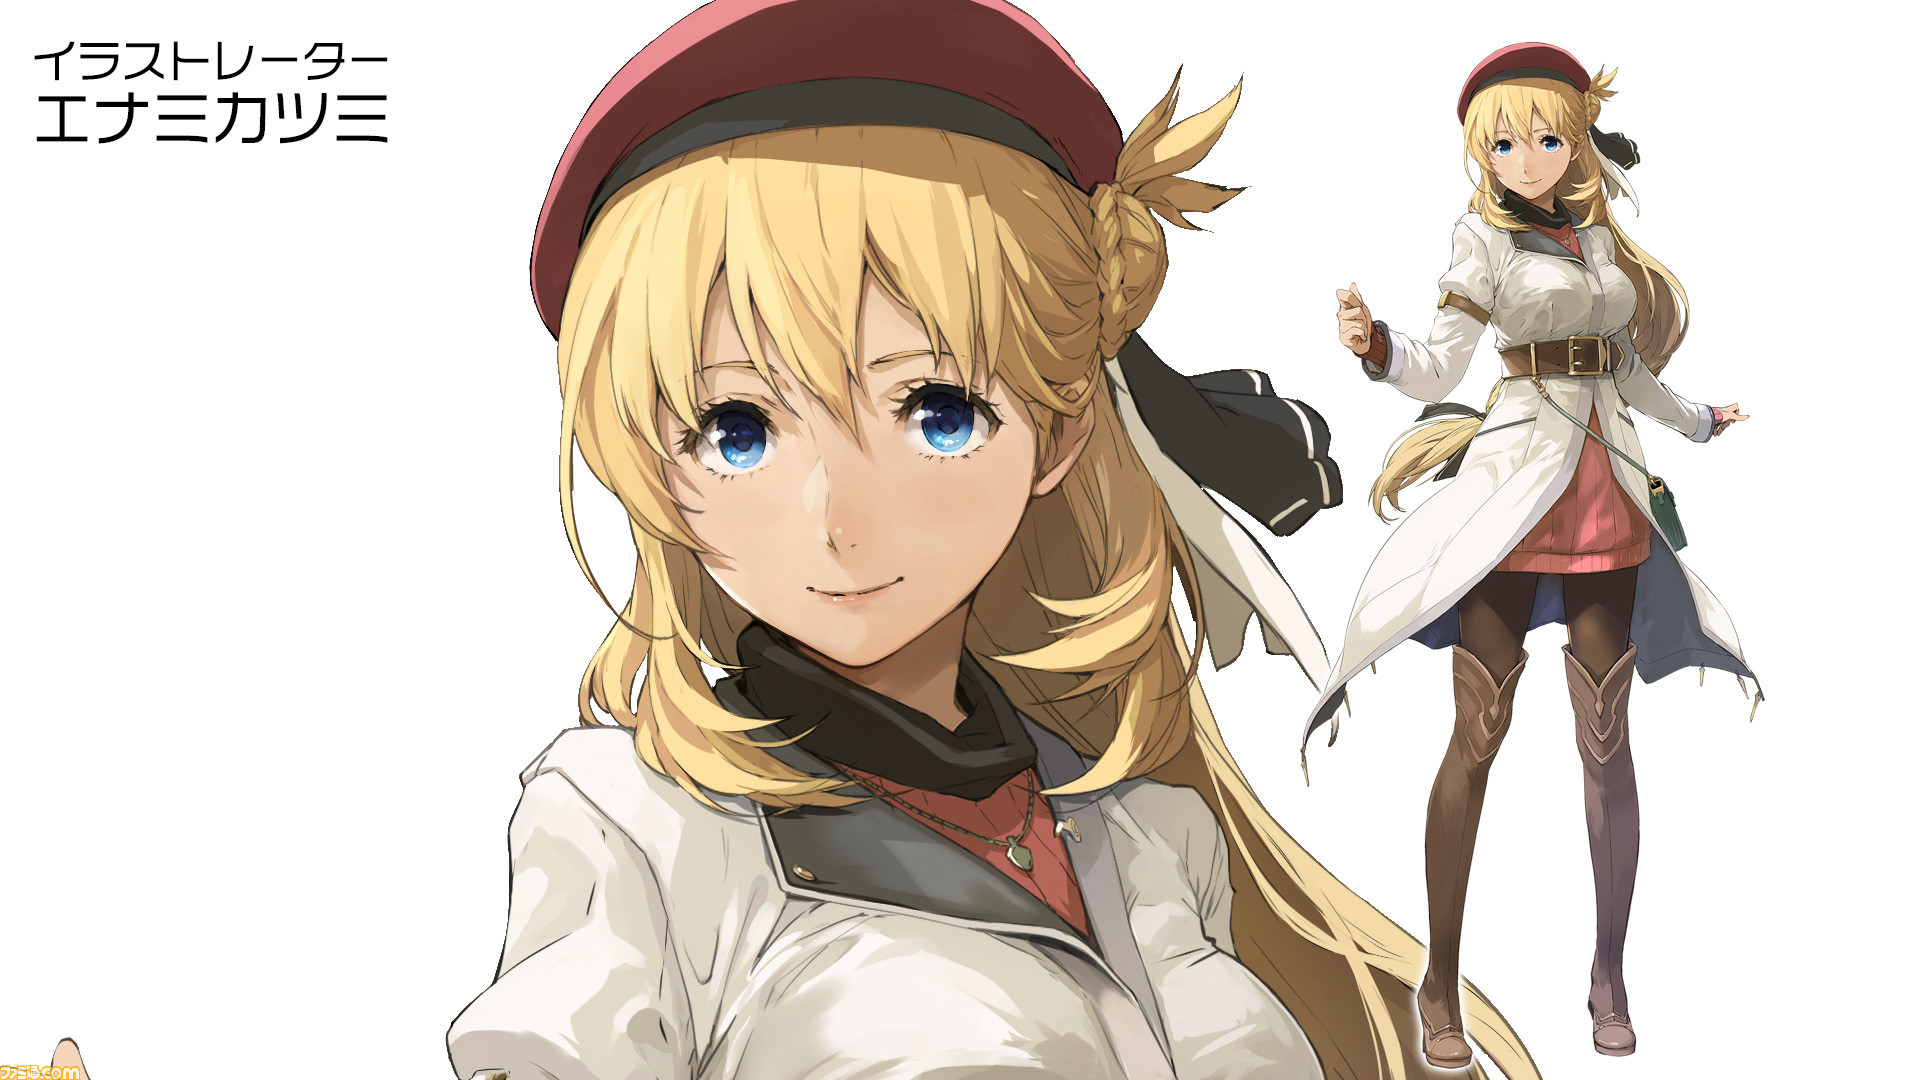 corrderio games this game considering fights back hold expecting them hard series spoilers steel cold thats falcom grind plan definantly neat thanks trails